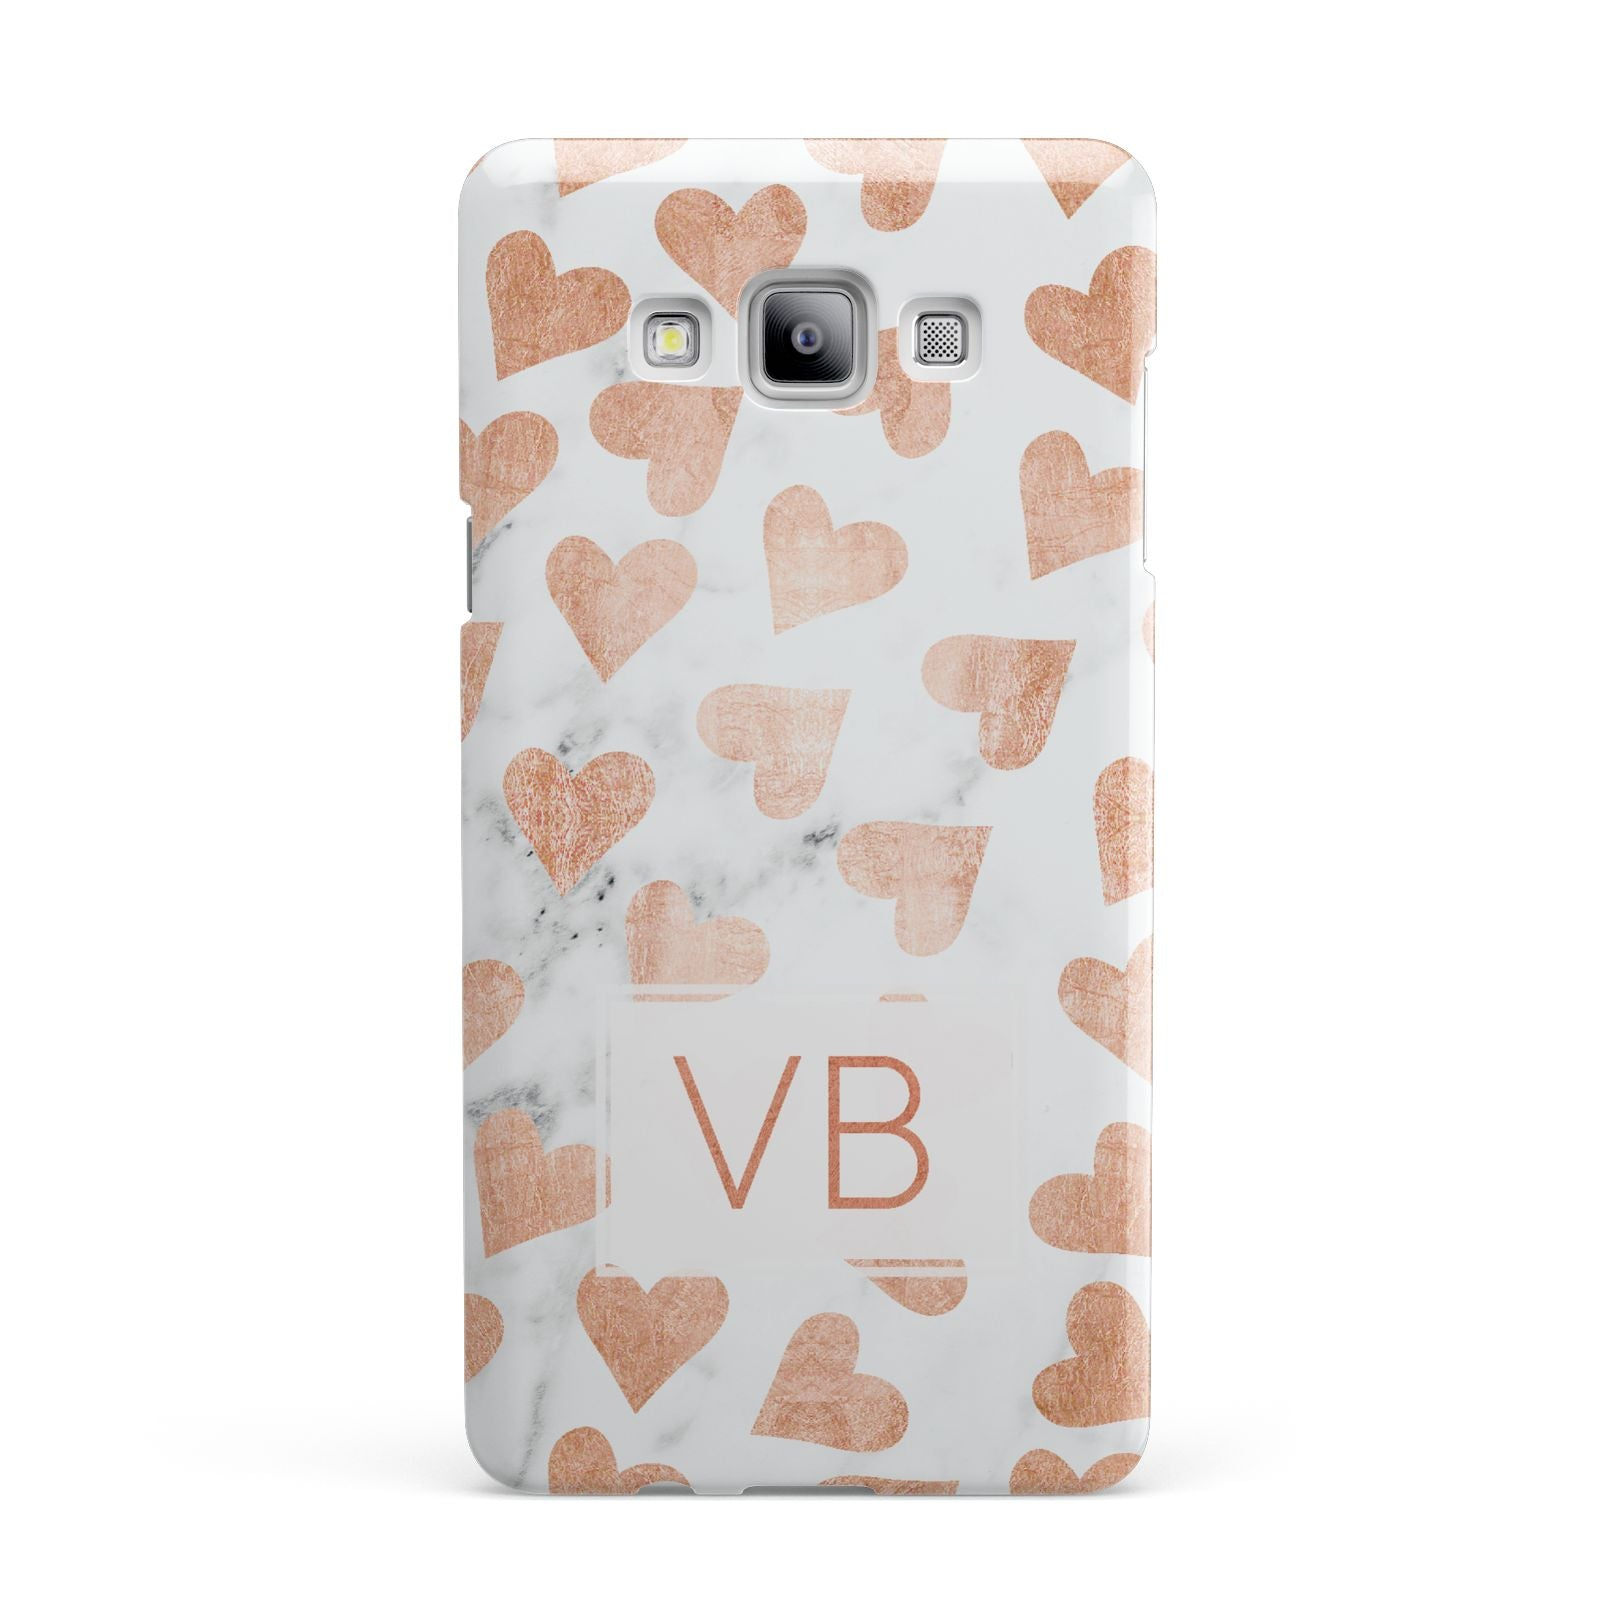 Personalised Heart Initialled Marble Samsung Galaxy A7 2015 Case